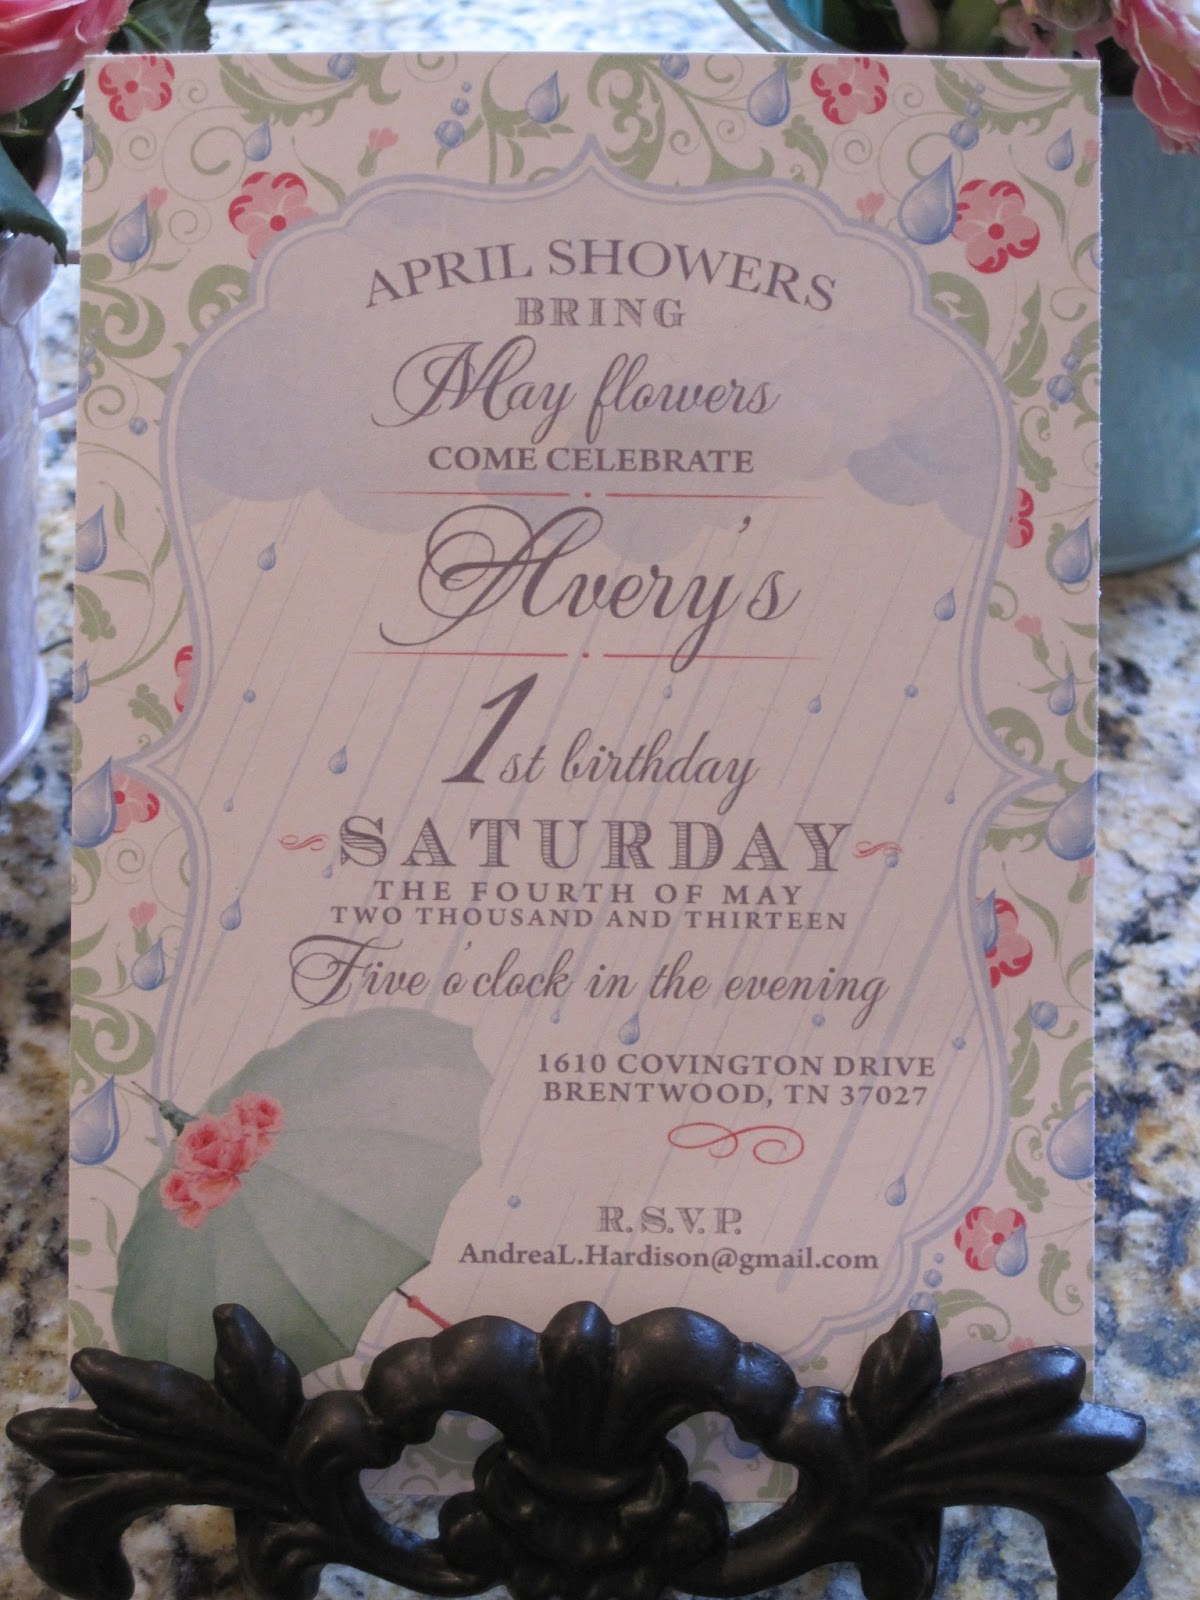 Team hardison averys first birthday party april showers bring averys first birthday party april showers bring may flowers izmirmasajfo